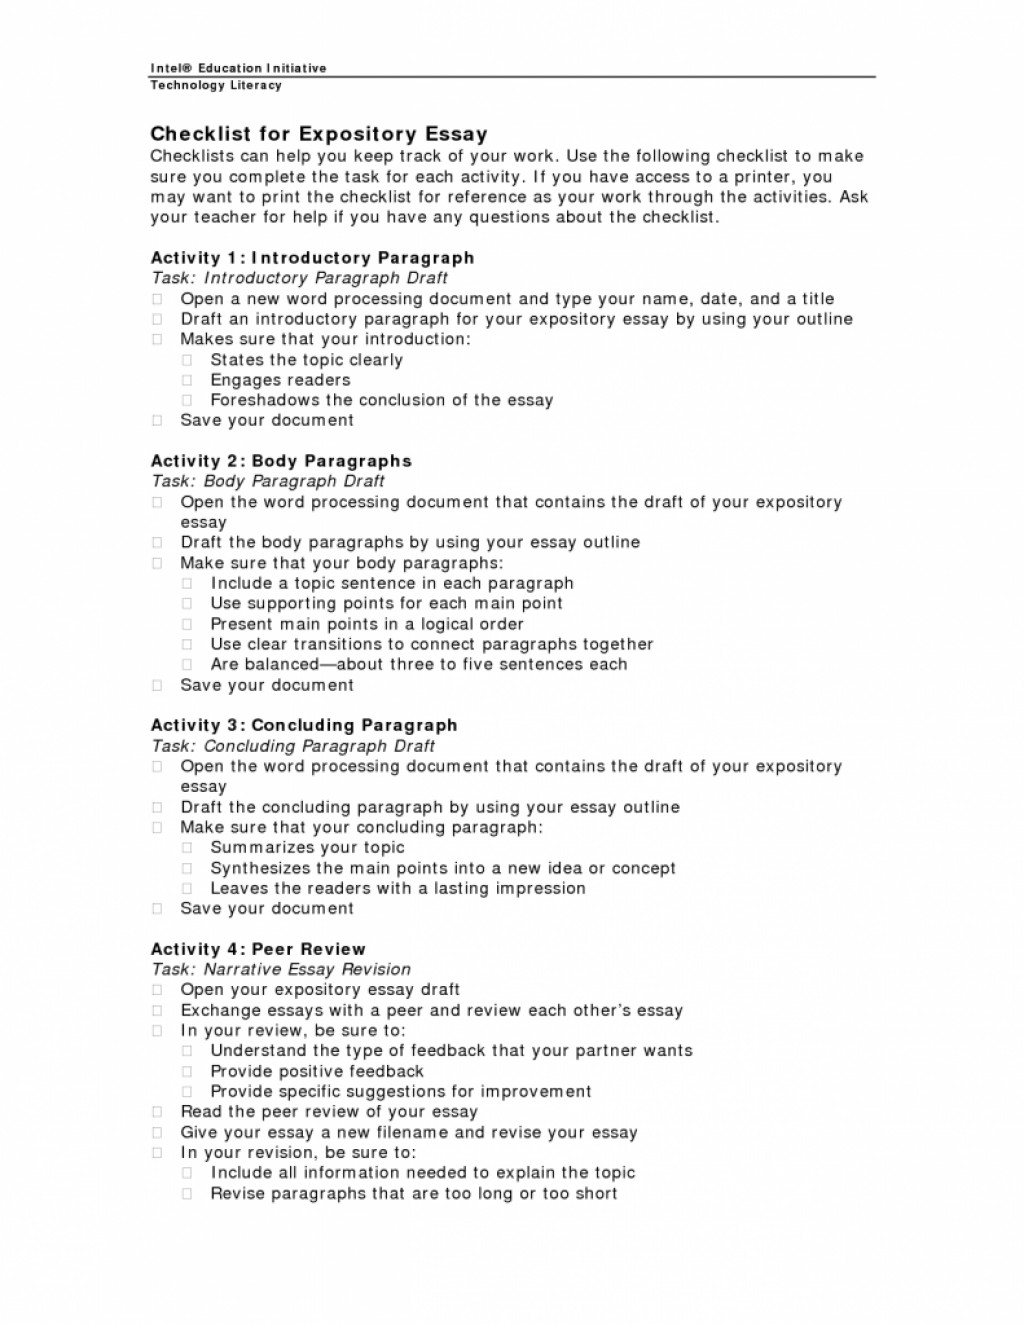 023 Expository Essay Checklist 791x1024 What Is An Magnificent Quizlet Writing Powerpoint Large